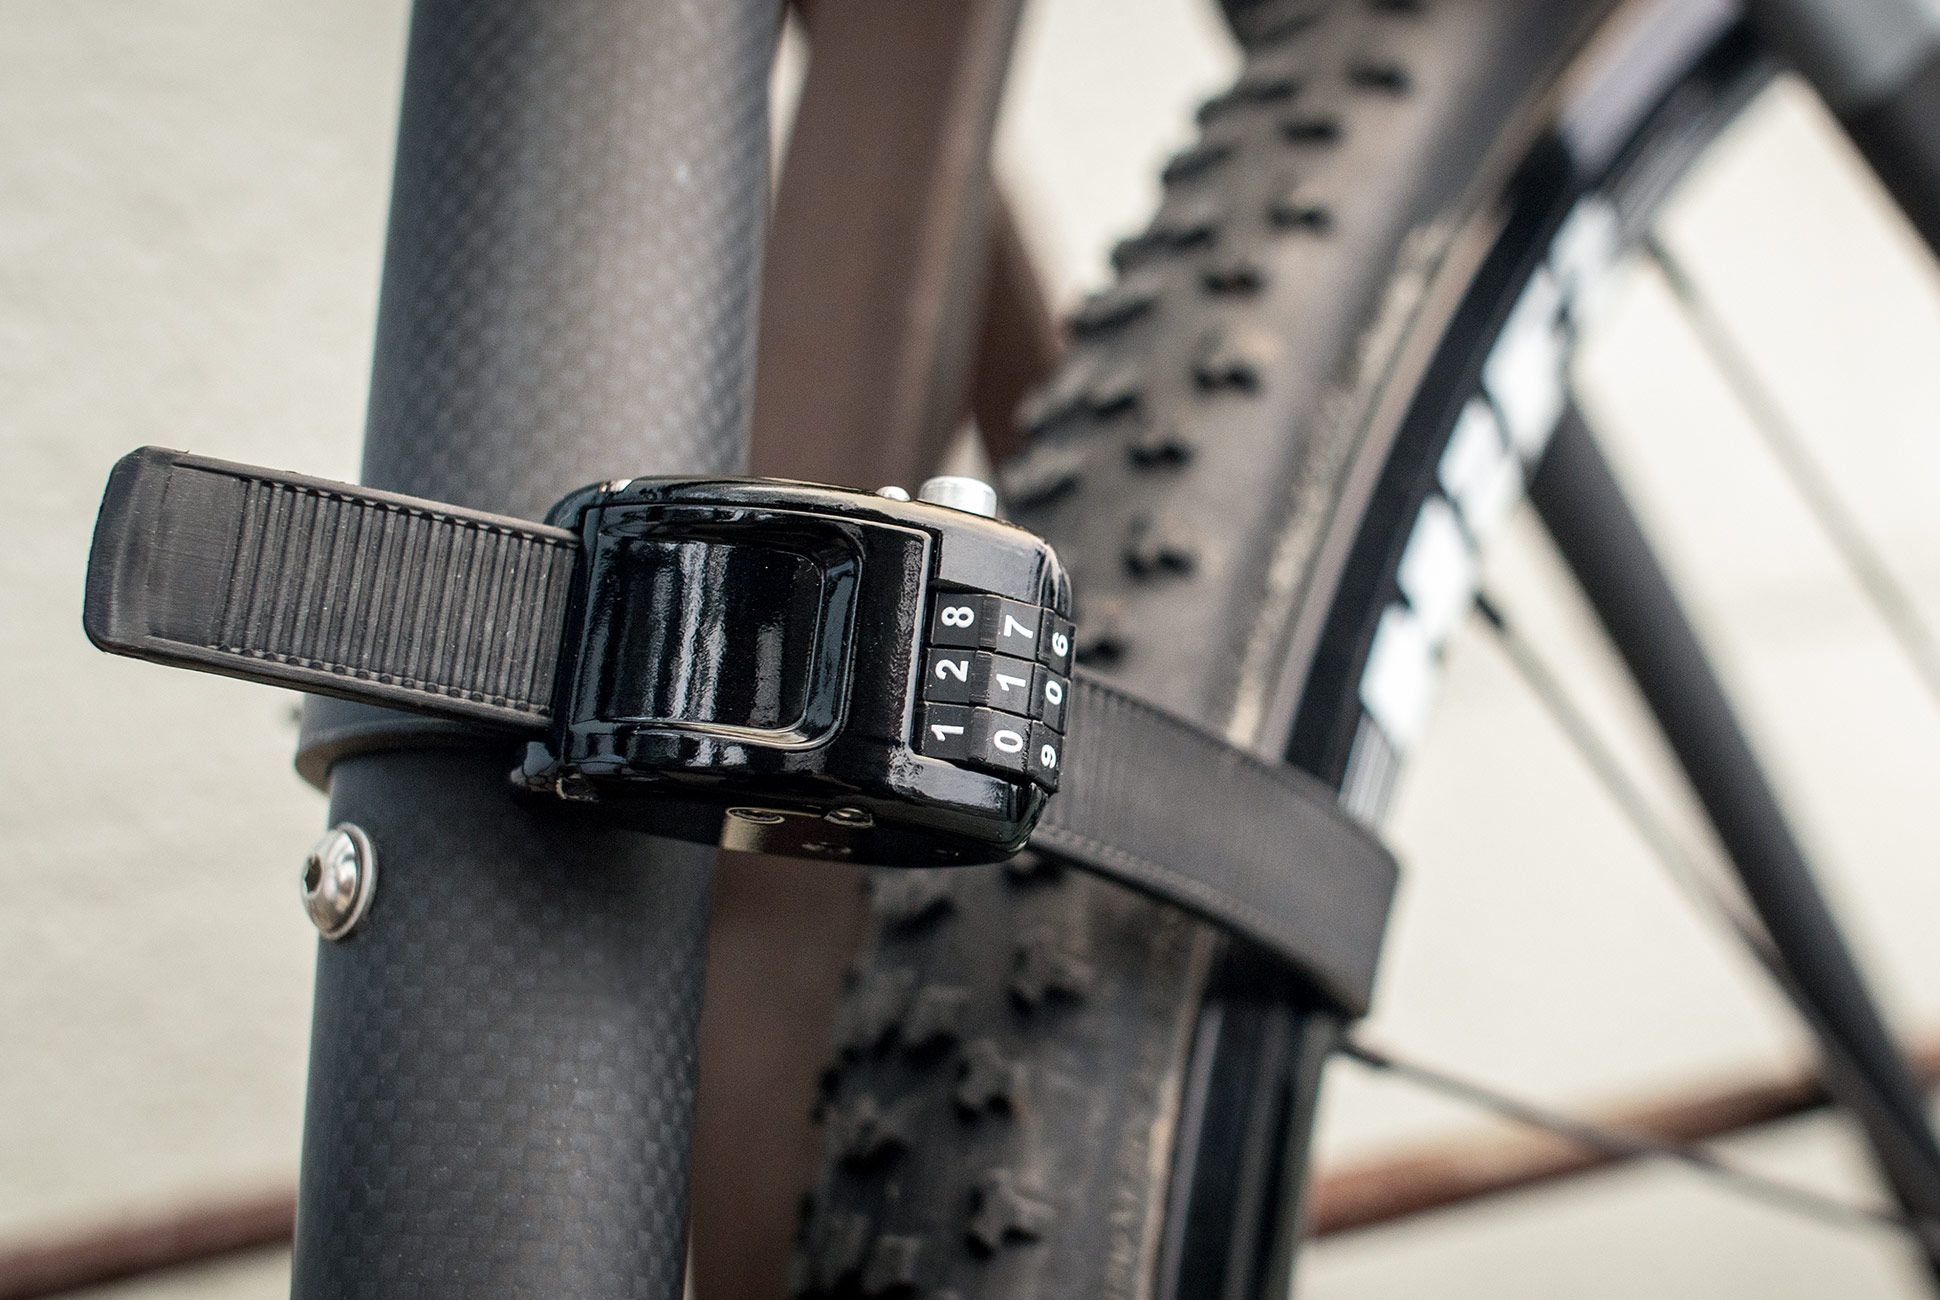 Best Bike Locks 2021 The Best Bike Locks for Every Cyclist • Gear Patrol